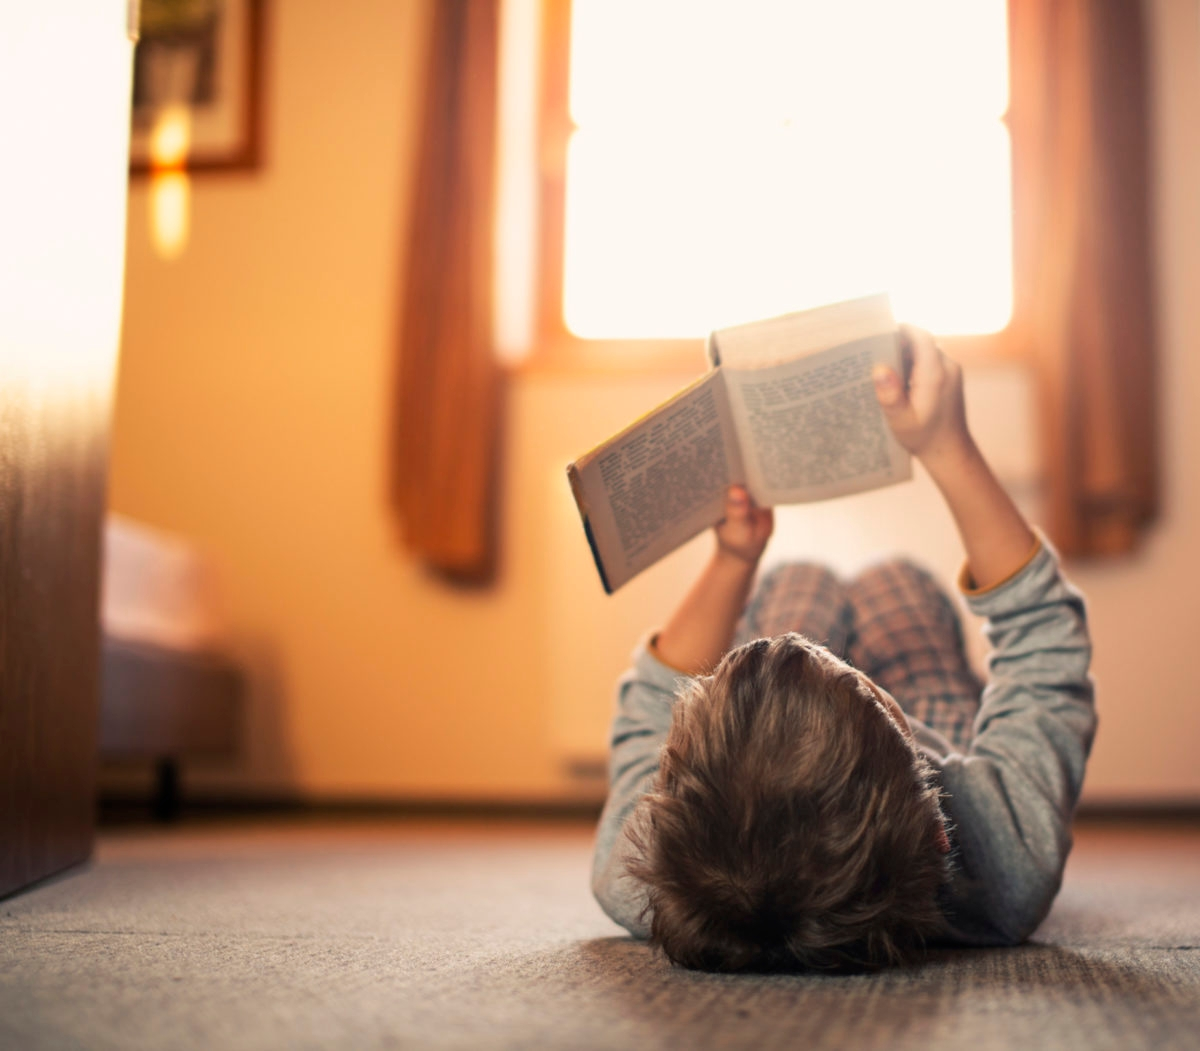 Little boy lying on the floor and reading a book. The boy is aged 6. Sunny day.